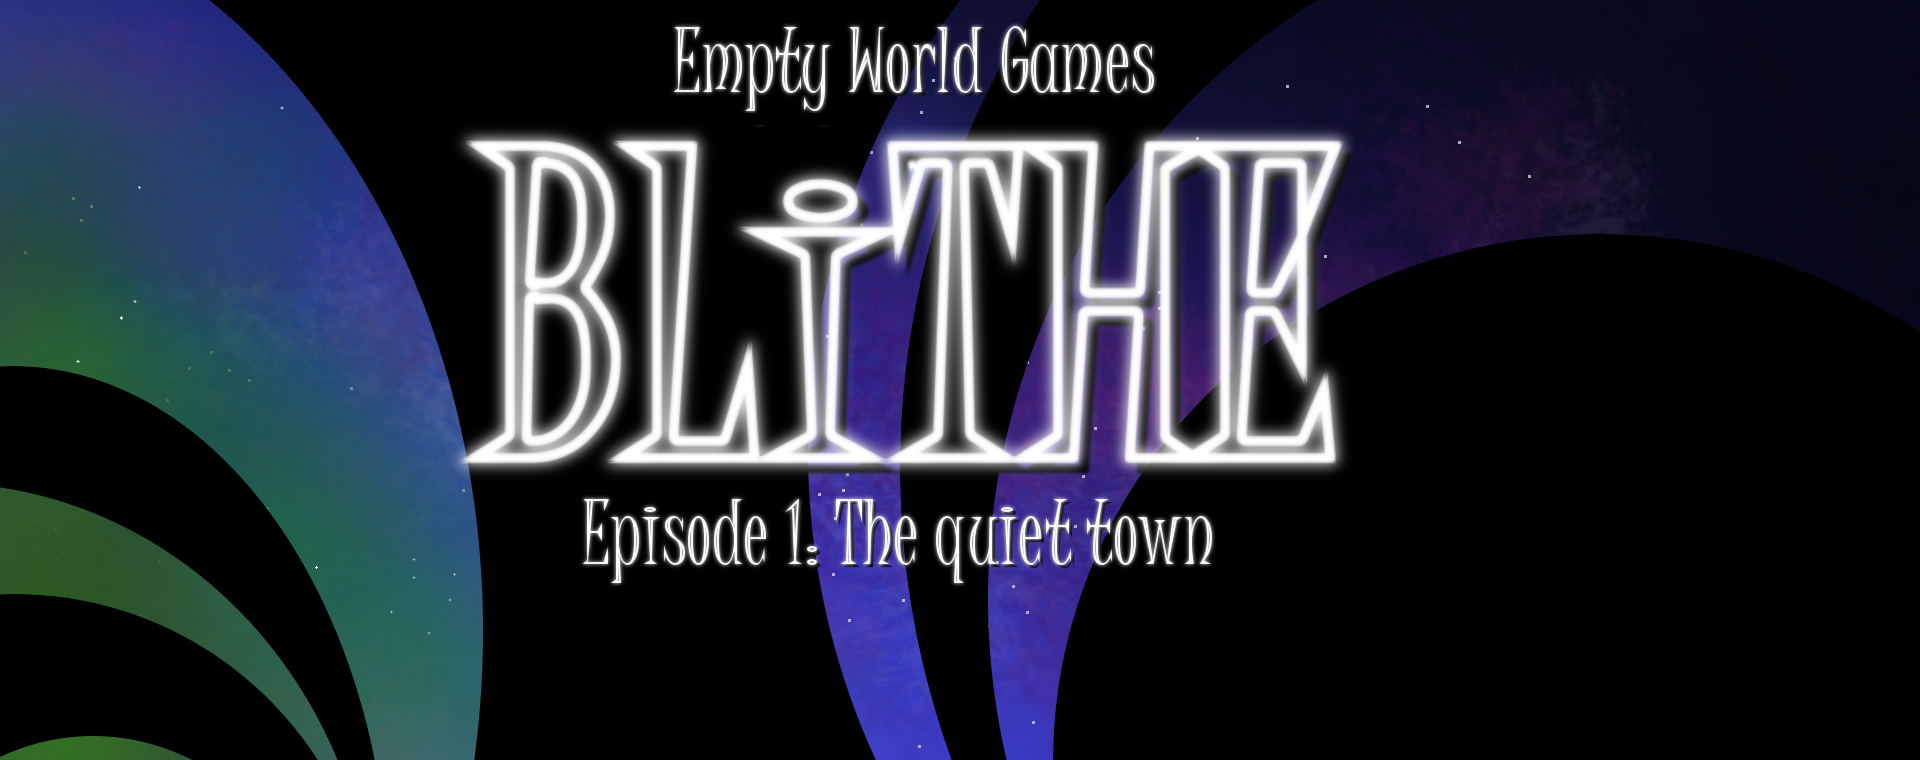 Blithe Ep I - The quiet town